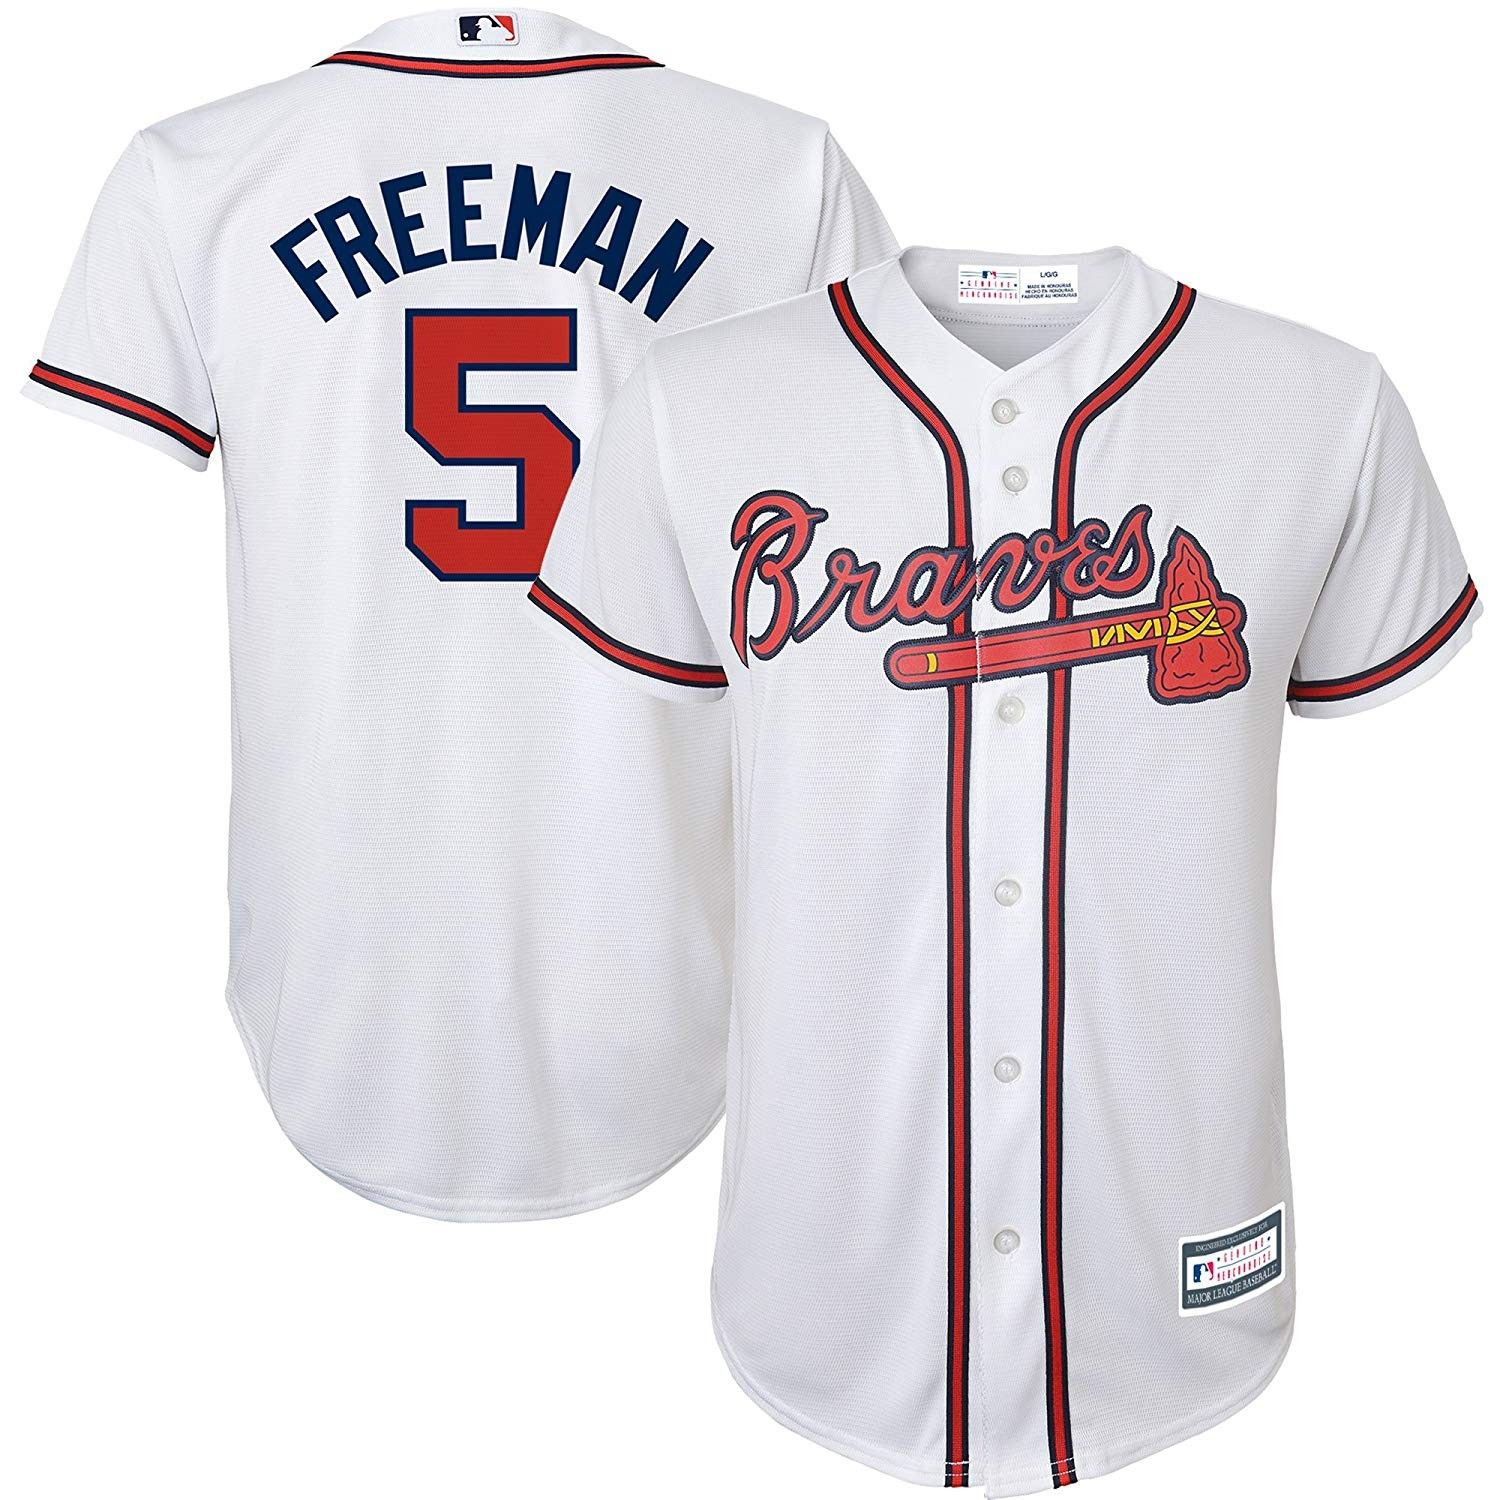 Freddie Freeman Atlanta Braves Mlb Youth White Home Cool Base Replica Jersey Ca18emglm8y Size Youth Small 8 Atlanta Braves Braves Jersey Atlanta Braves Jersey